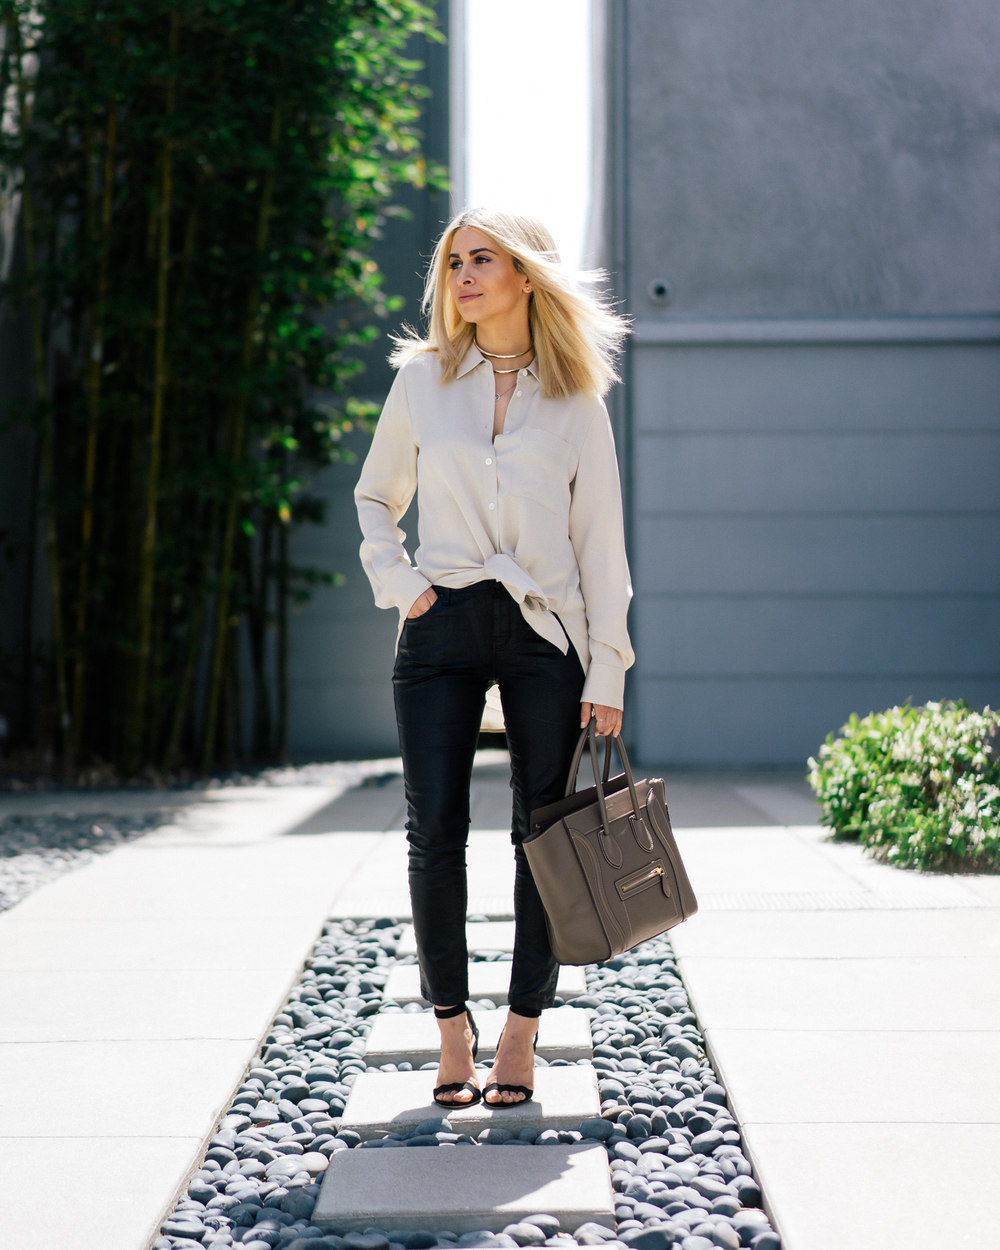 theory_silk shirt_leather pants_loeffler randall wedges_savvy javvy_newport beach_la blogger_oc blogger_oc woman_orange county woman_beach_nyc_street style_tien photographer_icy blonde hair_lob